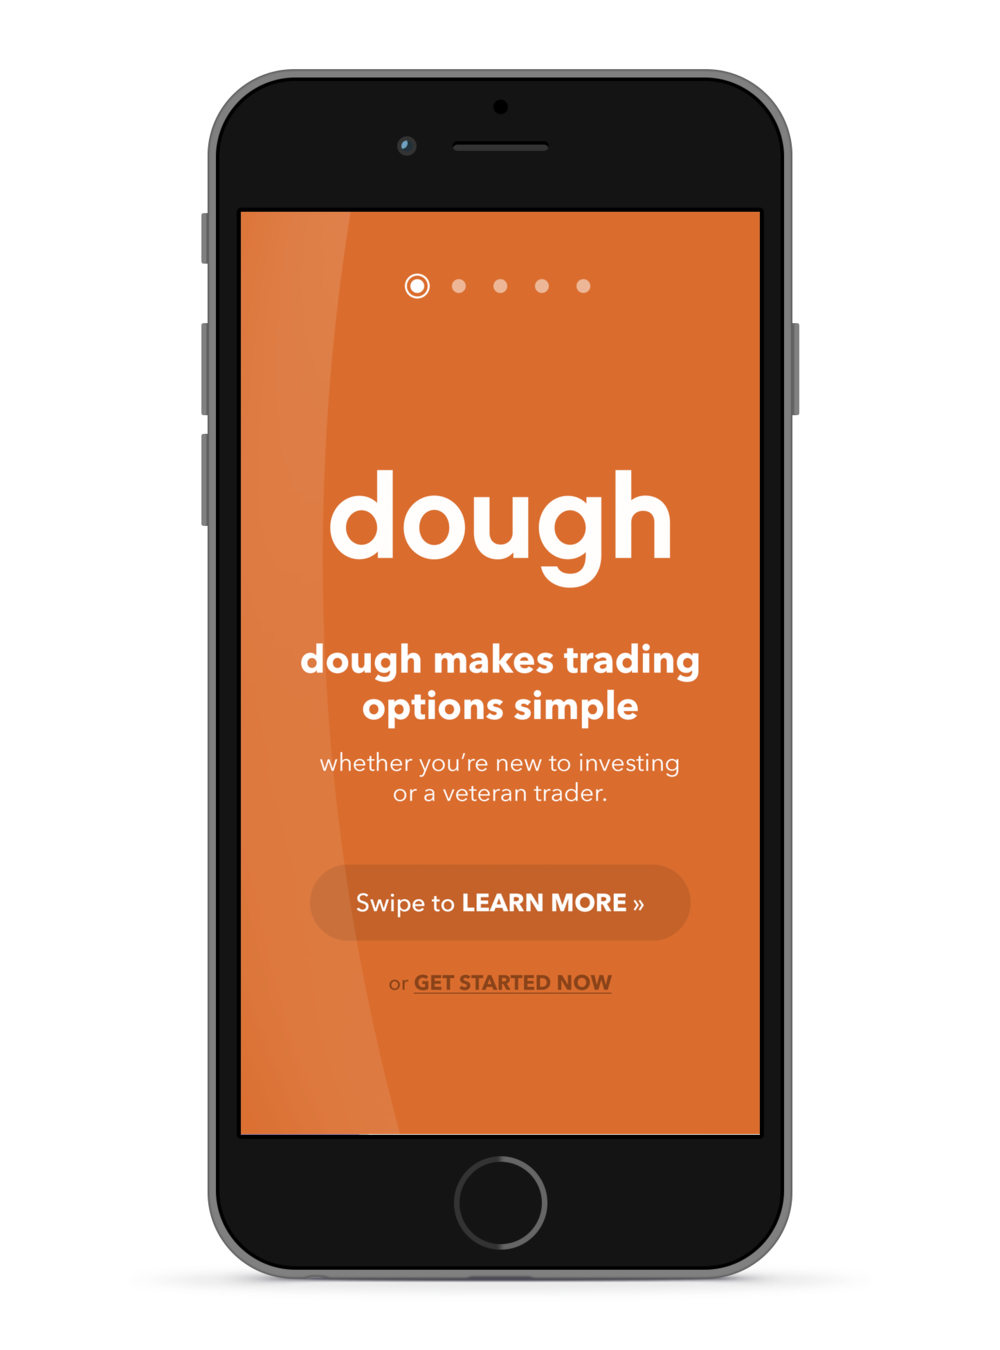 dough_walkthrough_screen_01.png